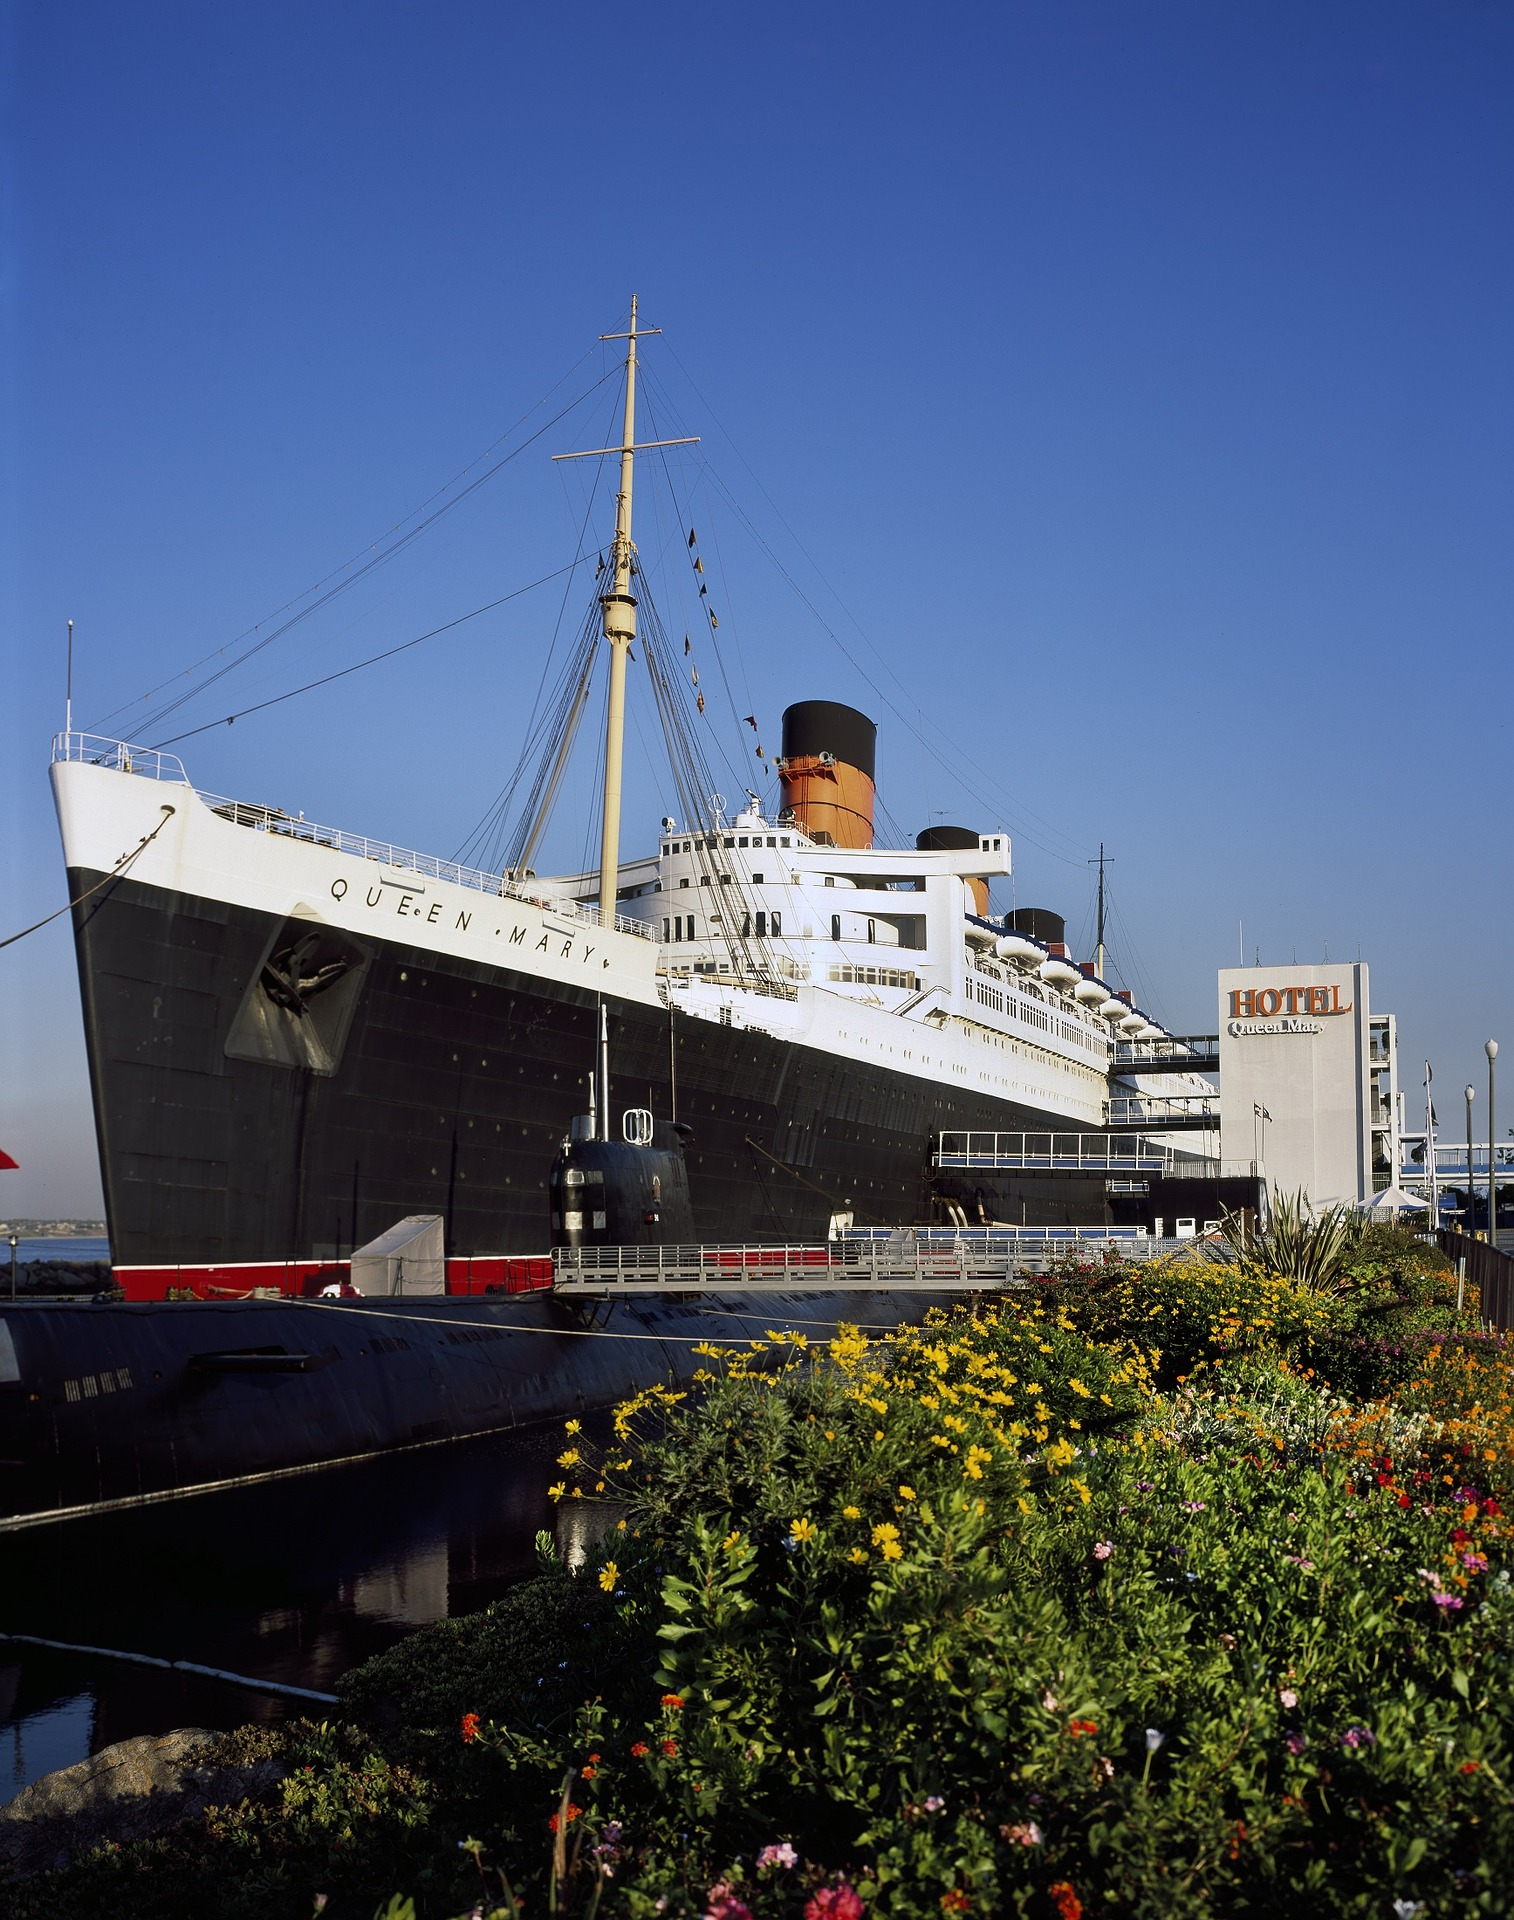 rms-queen-mary-1627372_1920.jpg